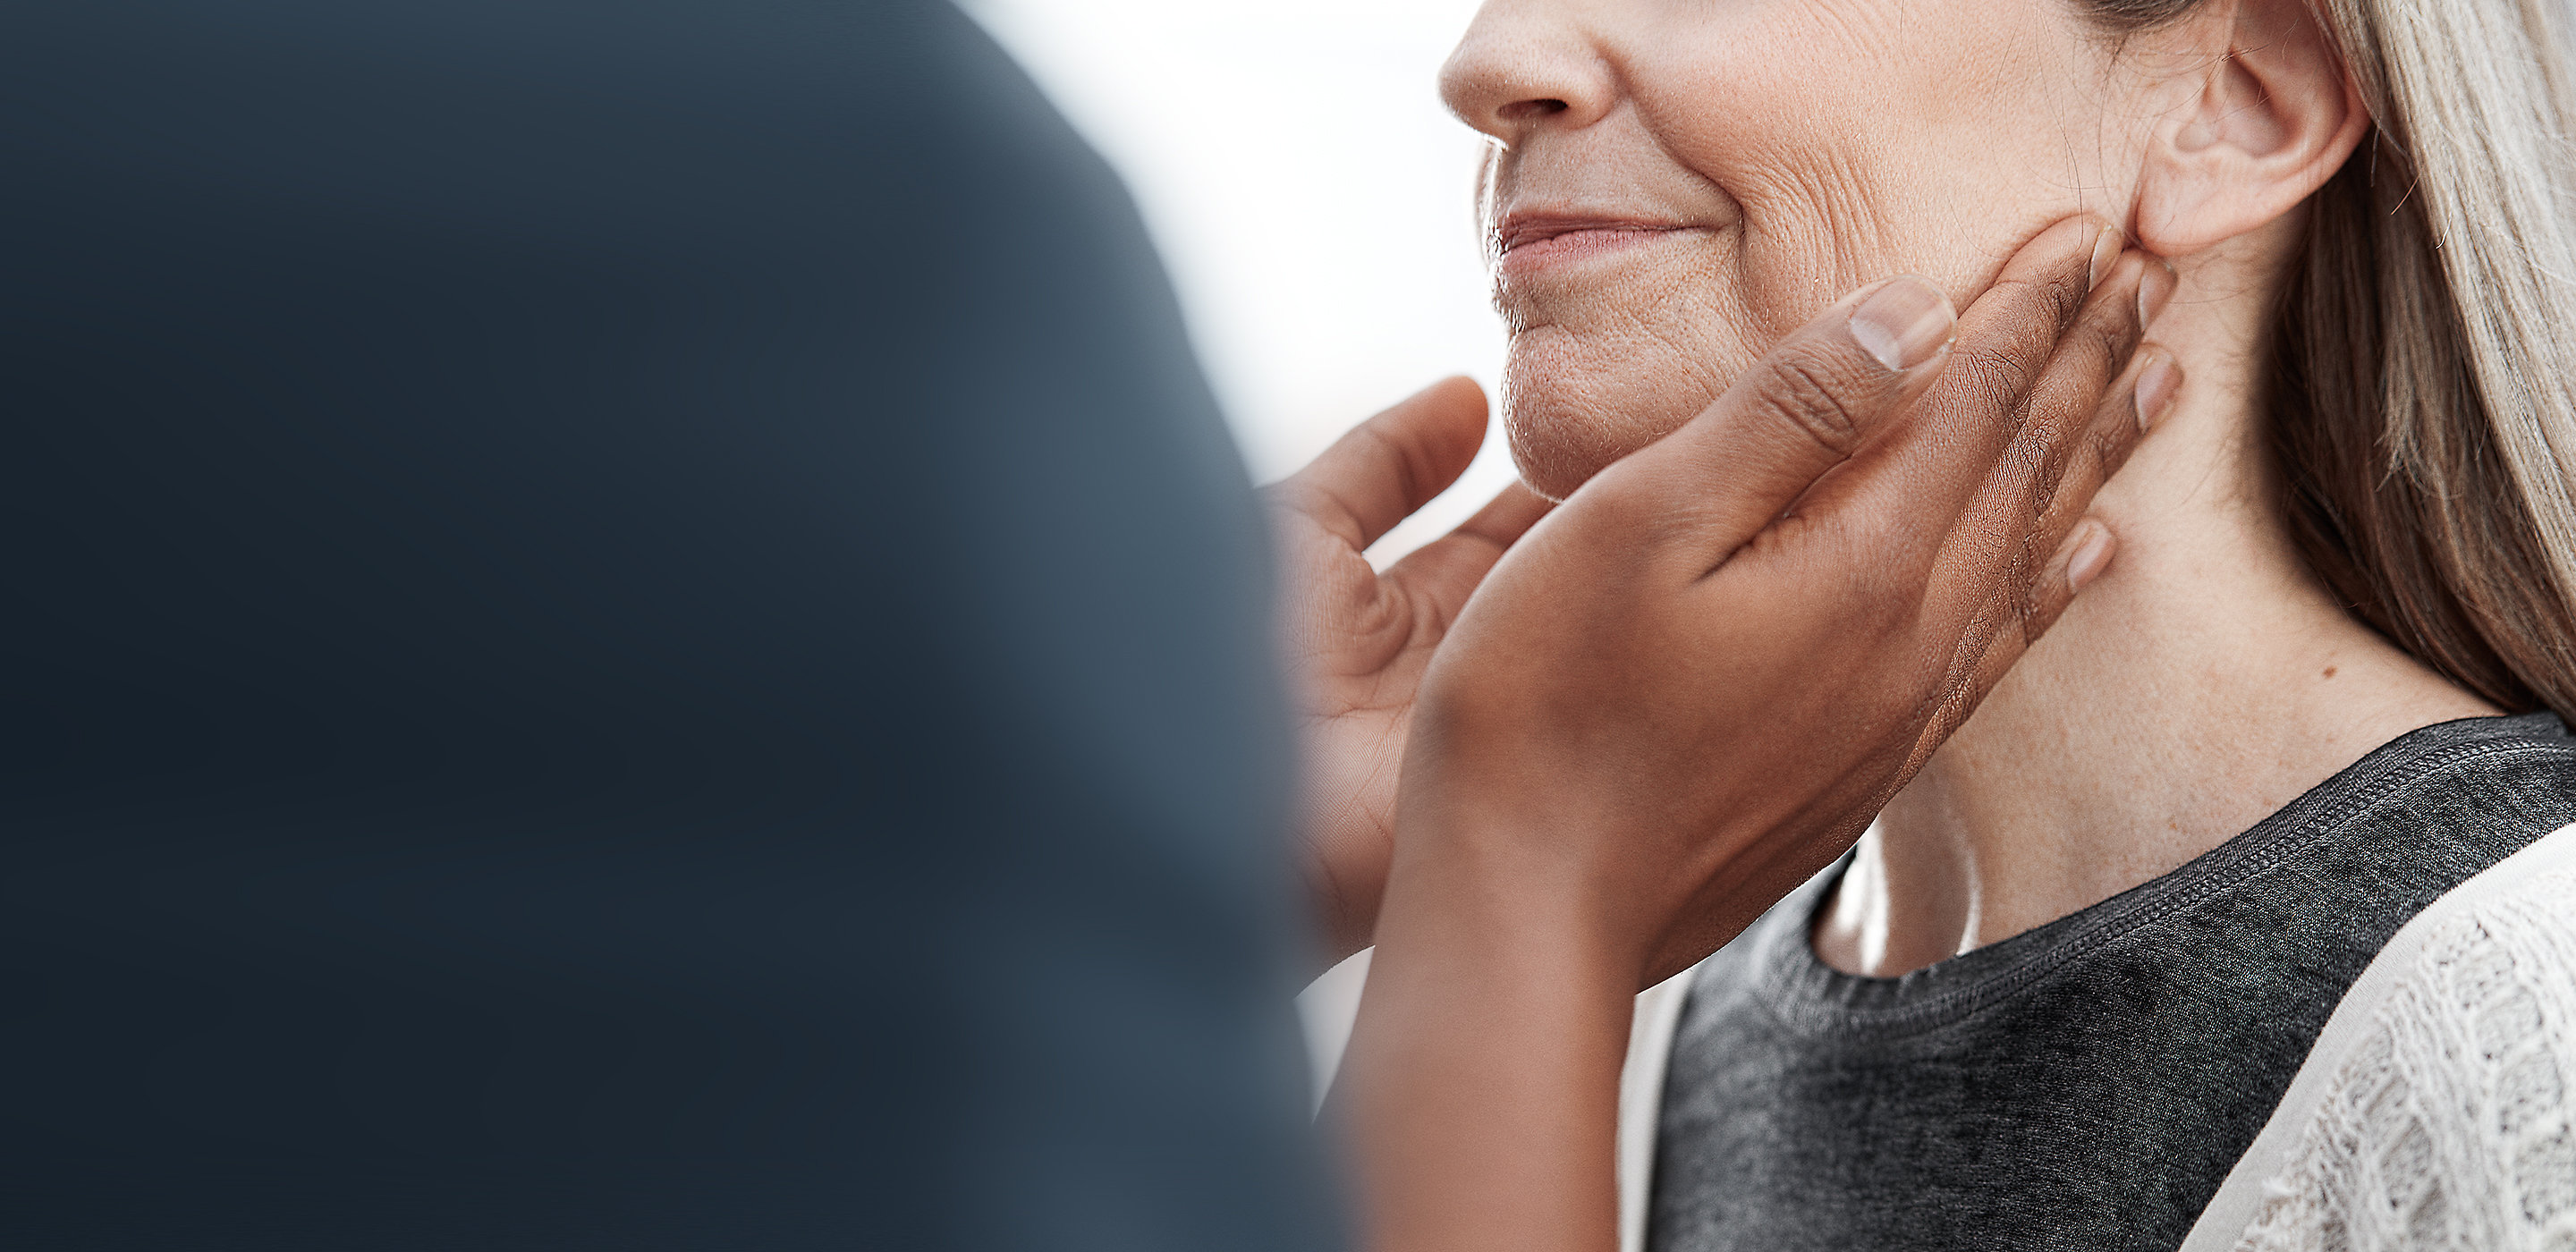 A clinician feels a patient's neck and throat lymph nodes during a physical exam